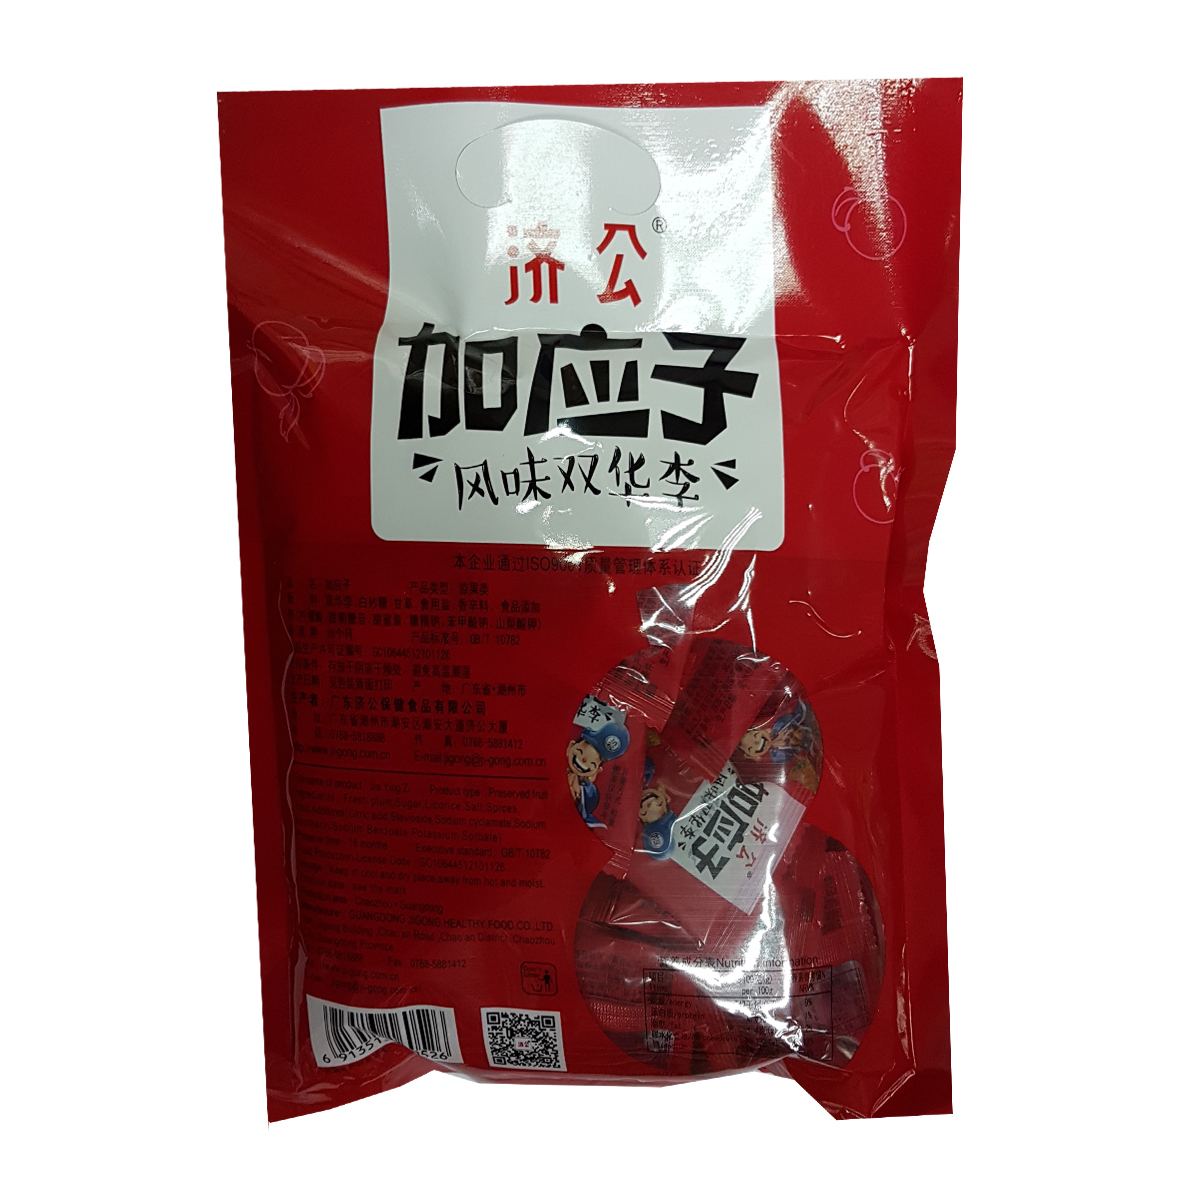 Jia Ying Zi Front Whie 188 Grams 30 Pkt Back.jpg